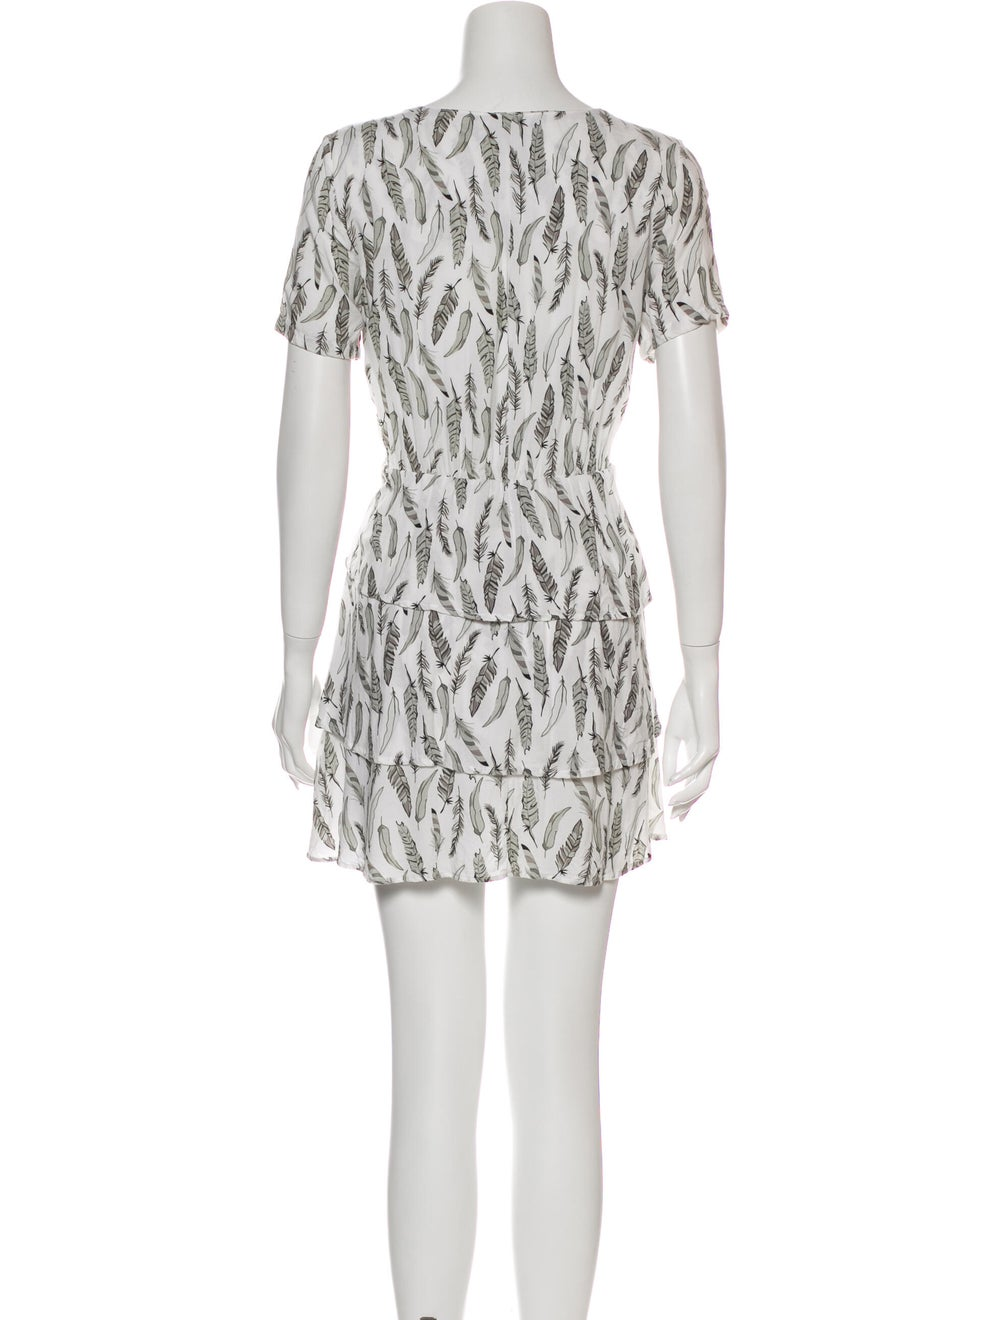 Anine Bing Printed Mini Dress Grey - image 3